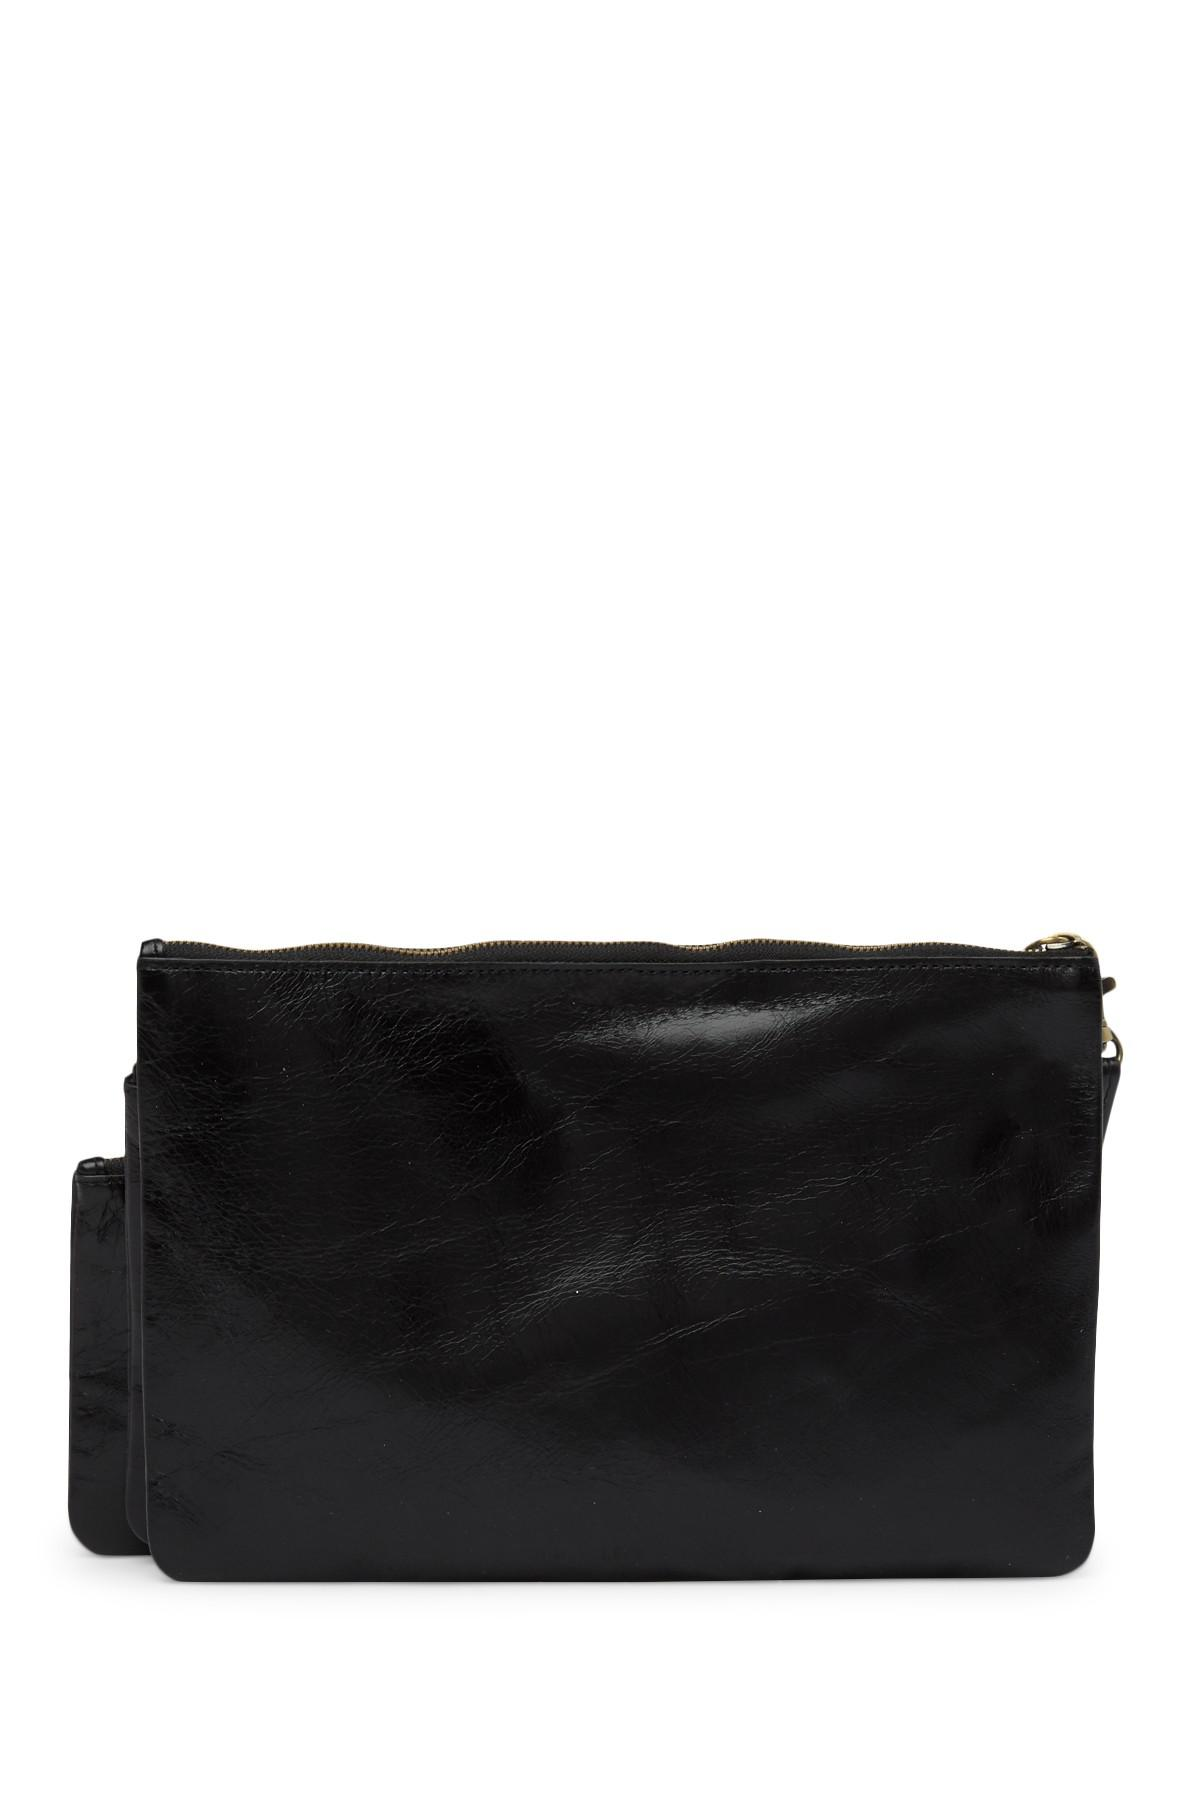 c391559815d5 Lyst - Hobo Triad Leather Pouch Set in Black